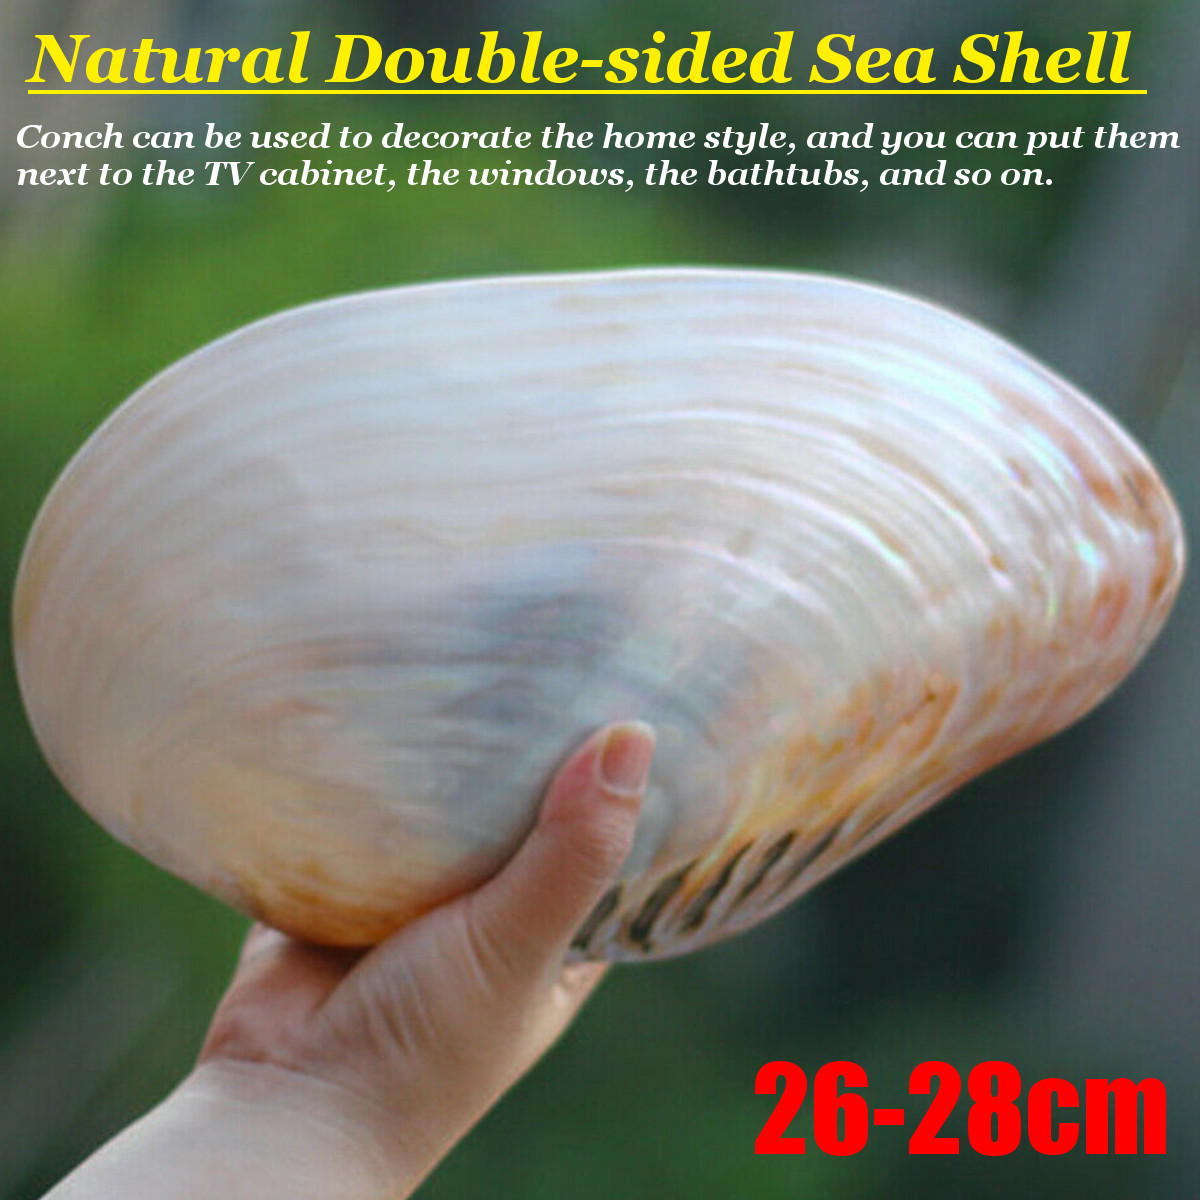 26-28cm Large Natural Conch Shell Coral Pearl Mussel Clam Double-sided Seashell Home Fish Tank Accessories Aquarium Decor New